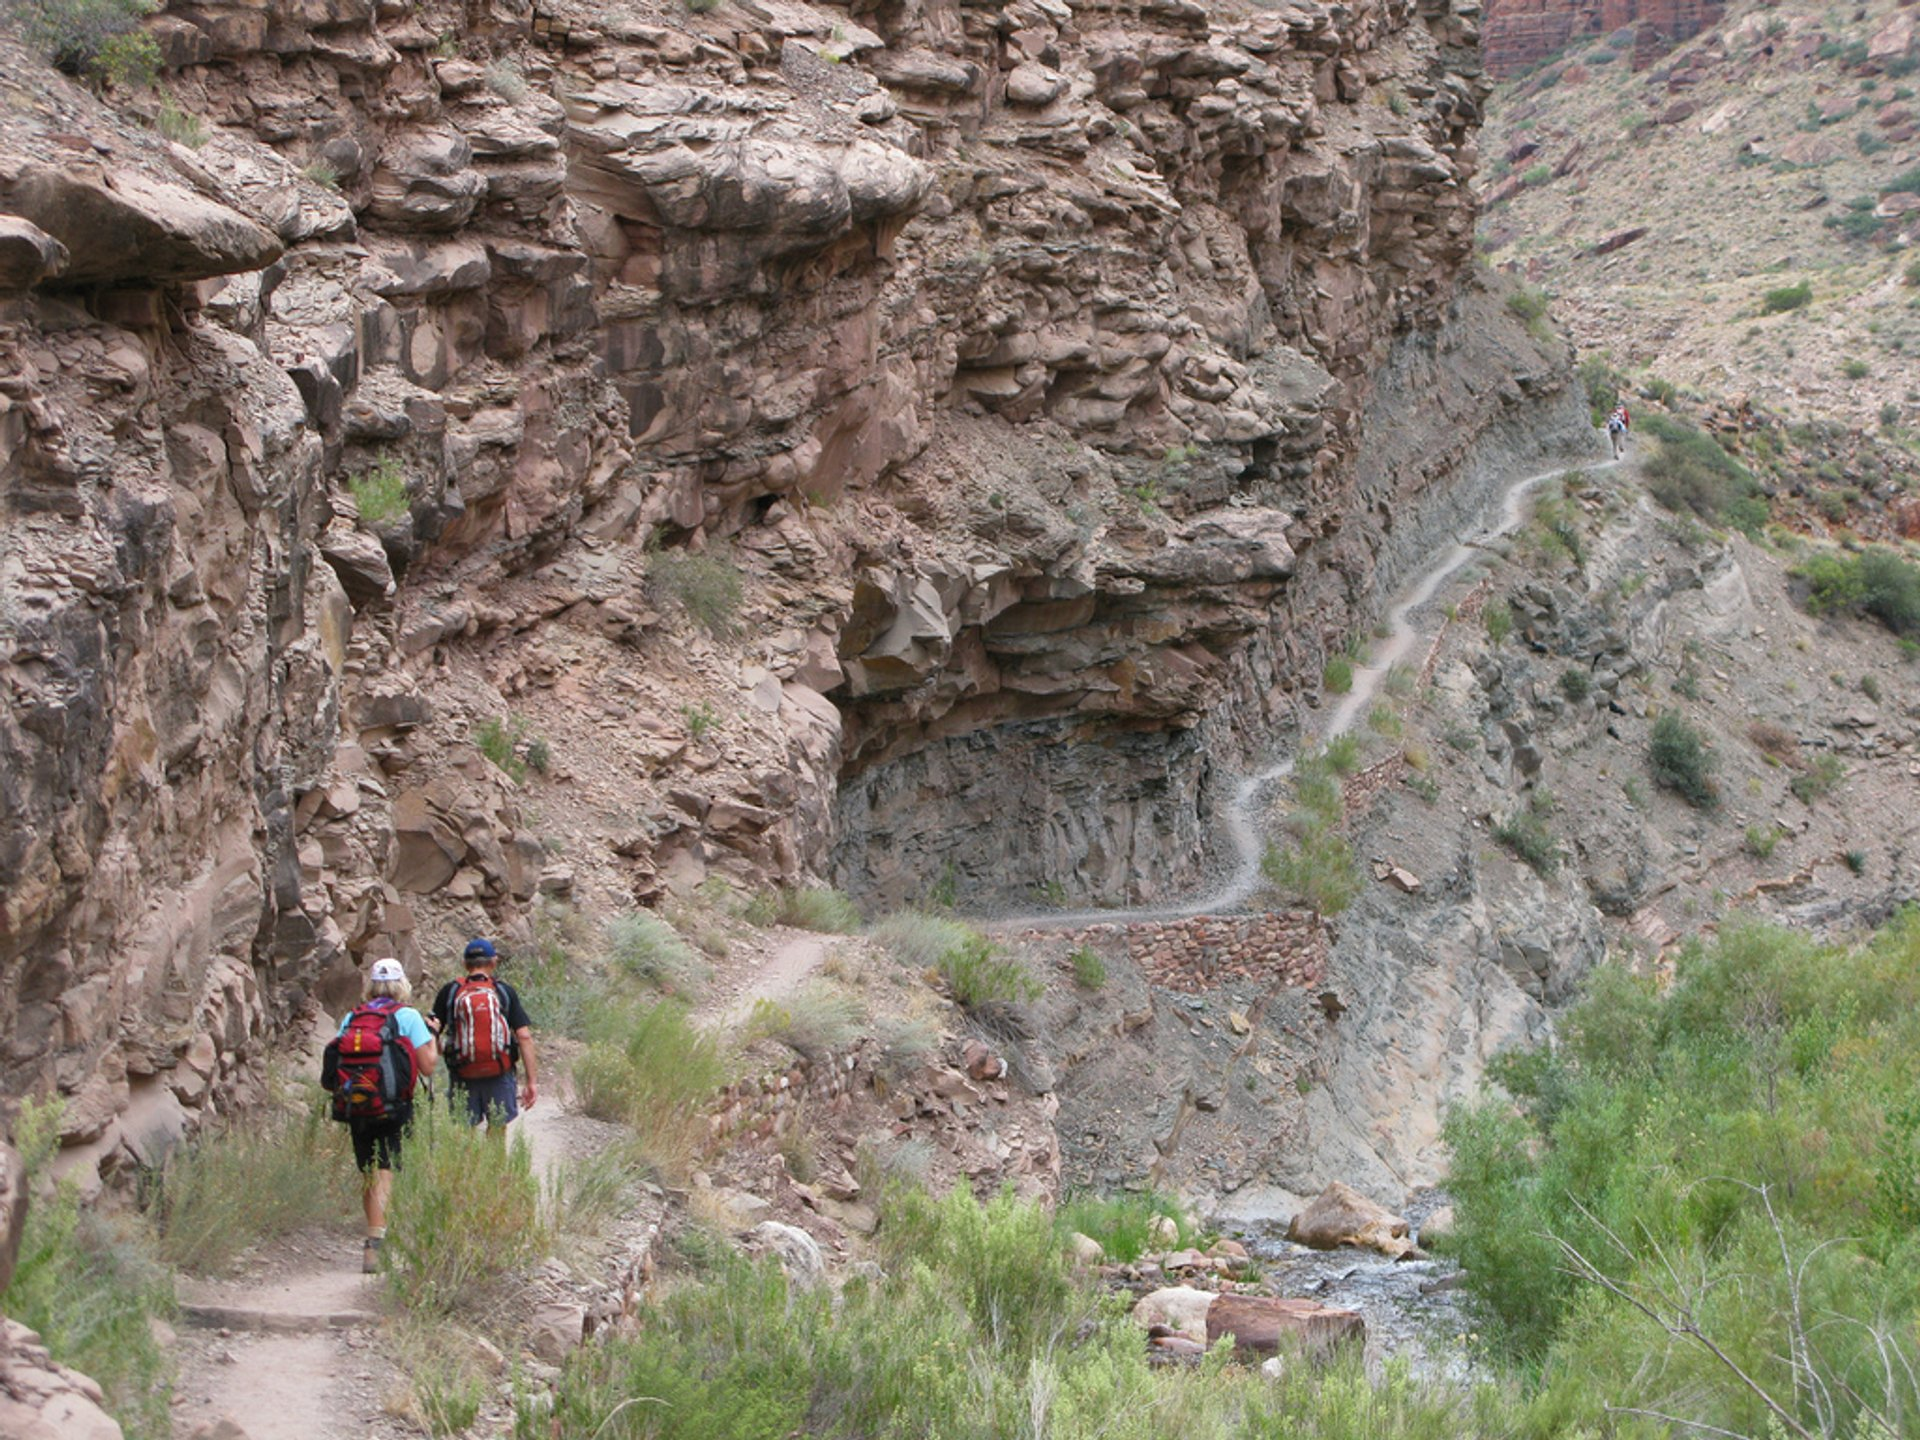 Backpackers just below Cottonwood Campground on the North Kaibab Trail descending deeper into the Grand Canyon 2020